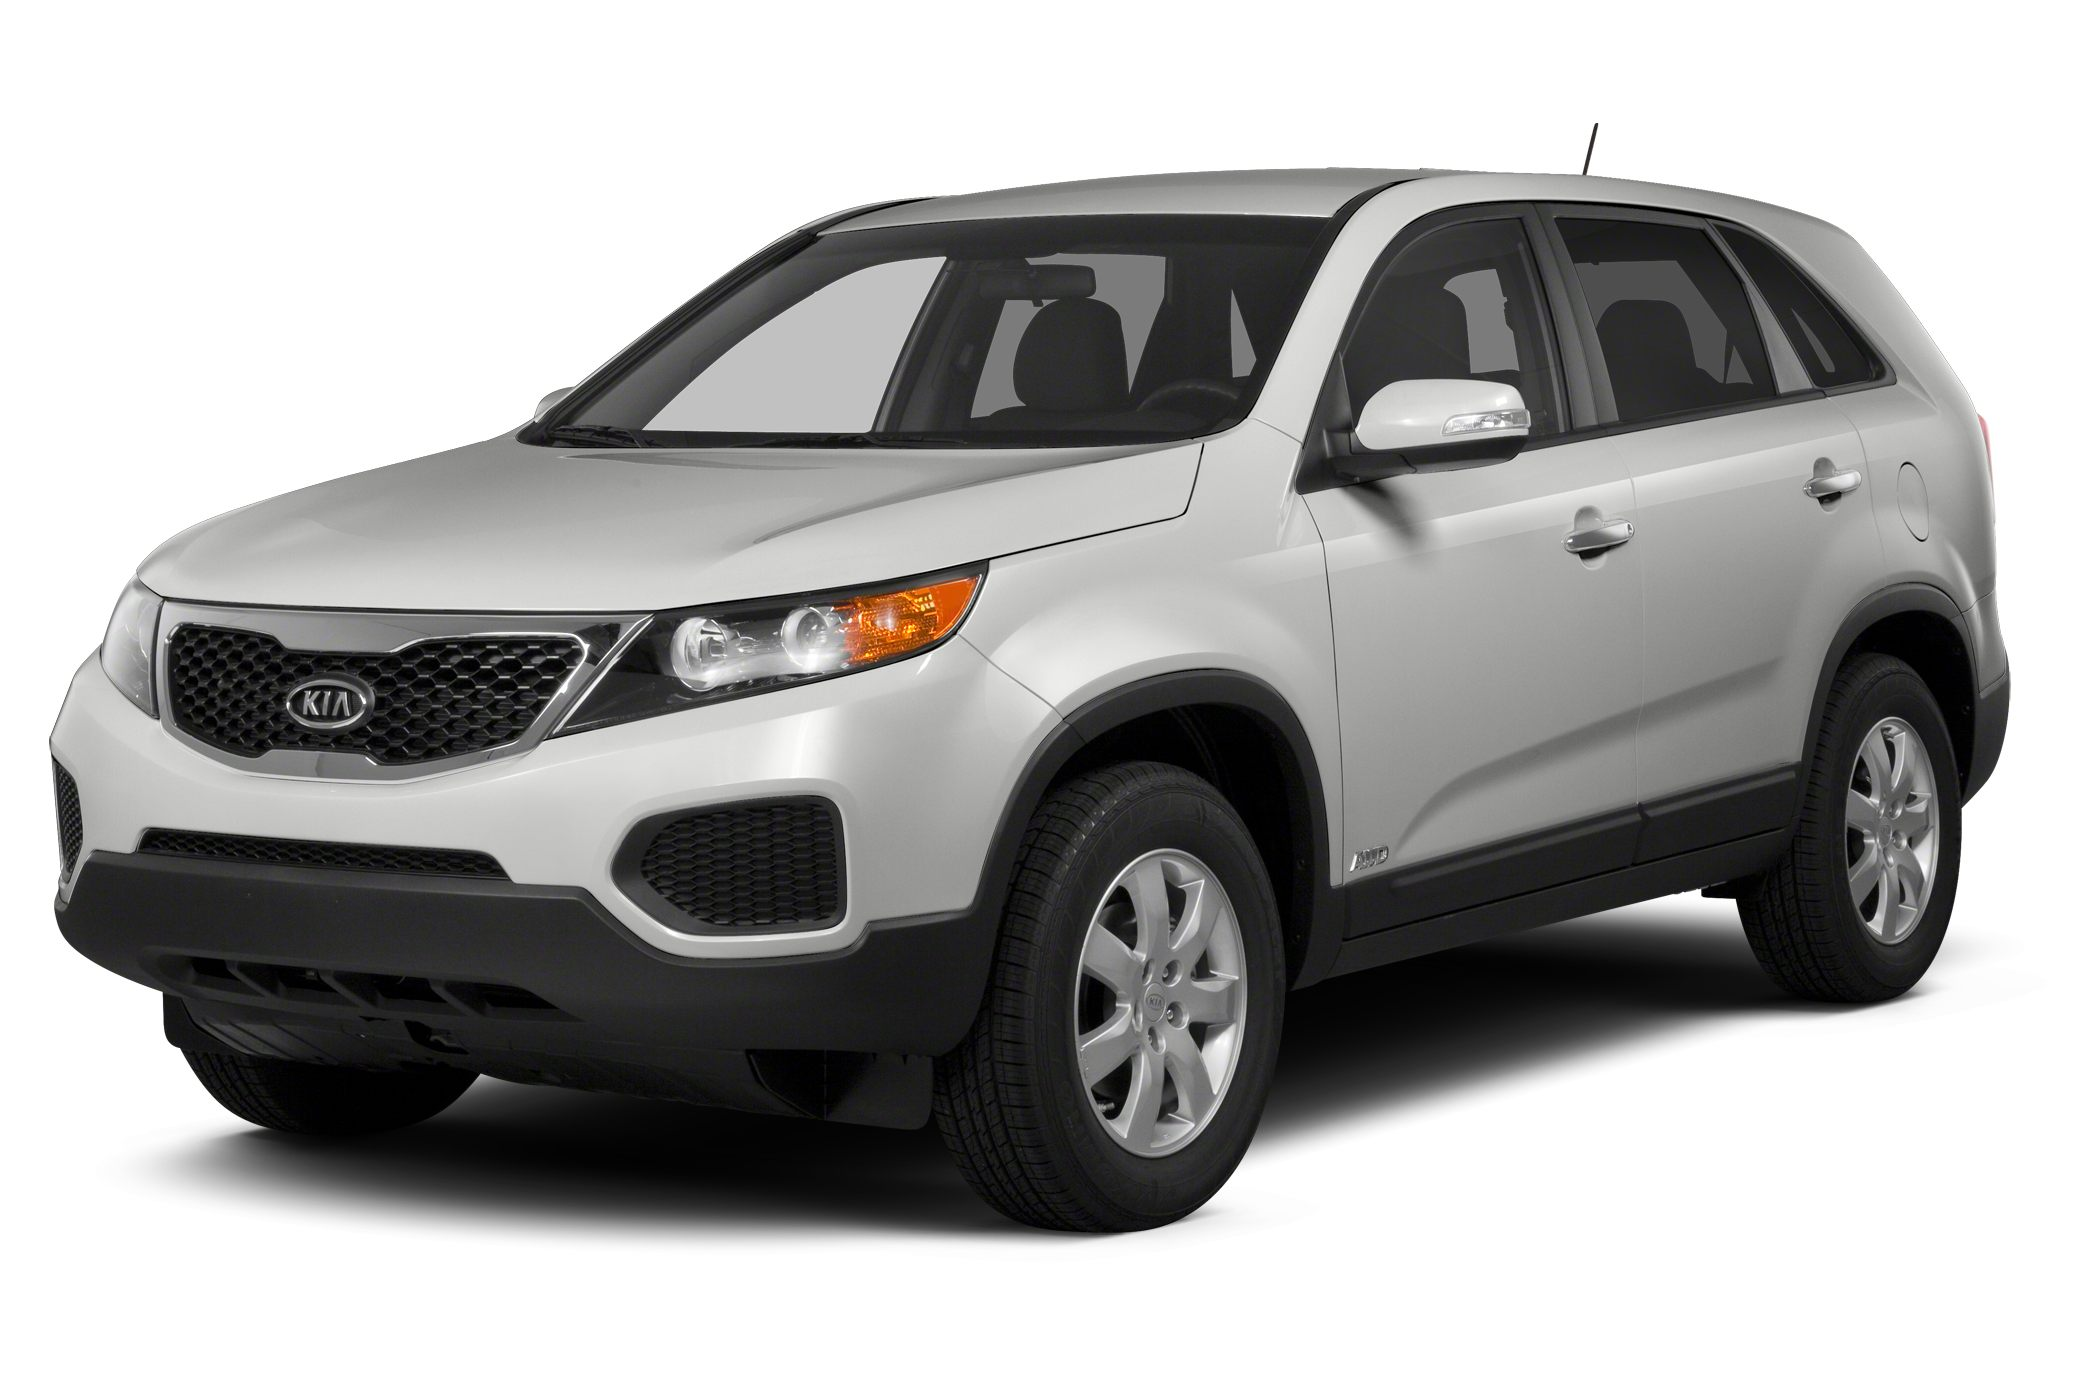 2012 Kia Sorento LX SUV for sale in Nashville for $12,839 with 130,036 miles